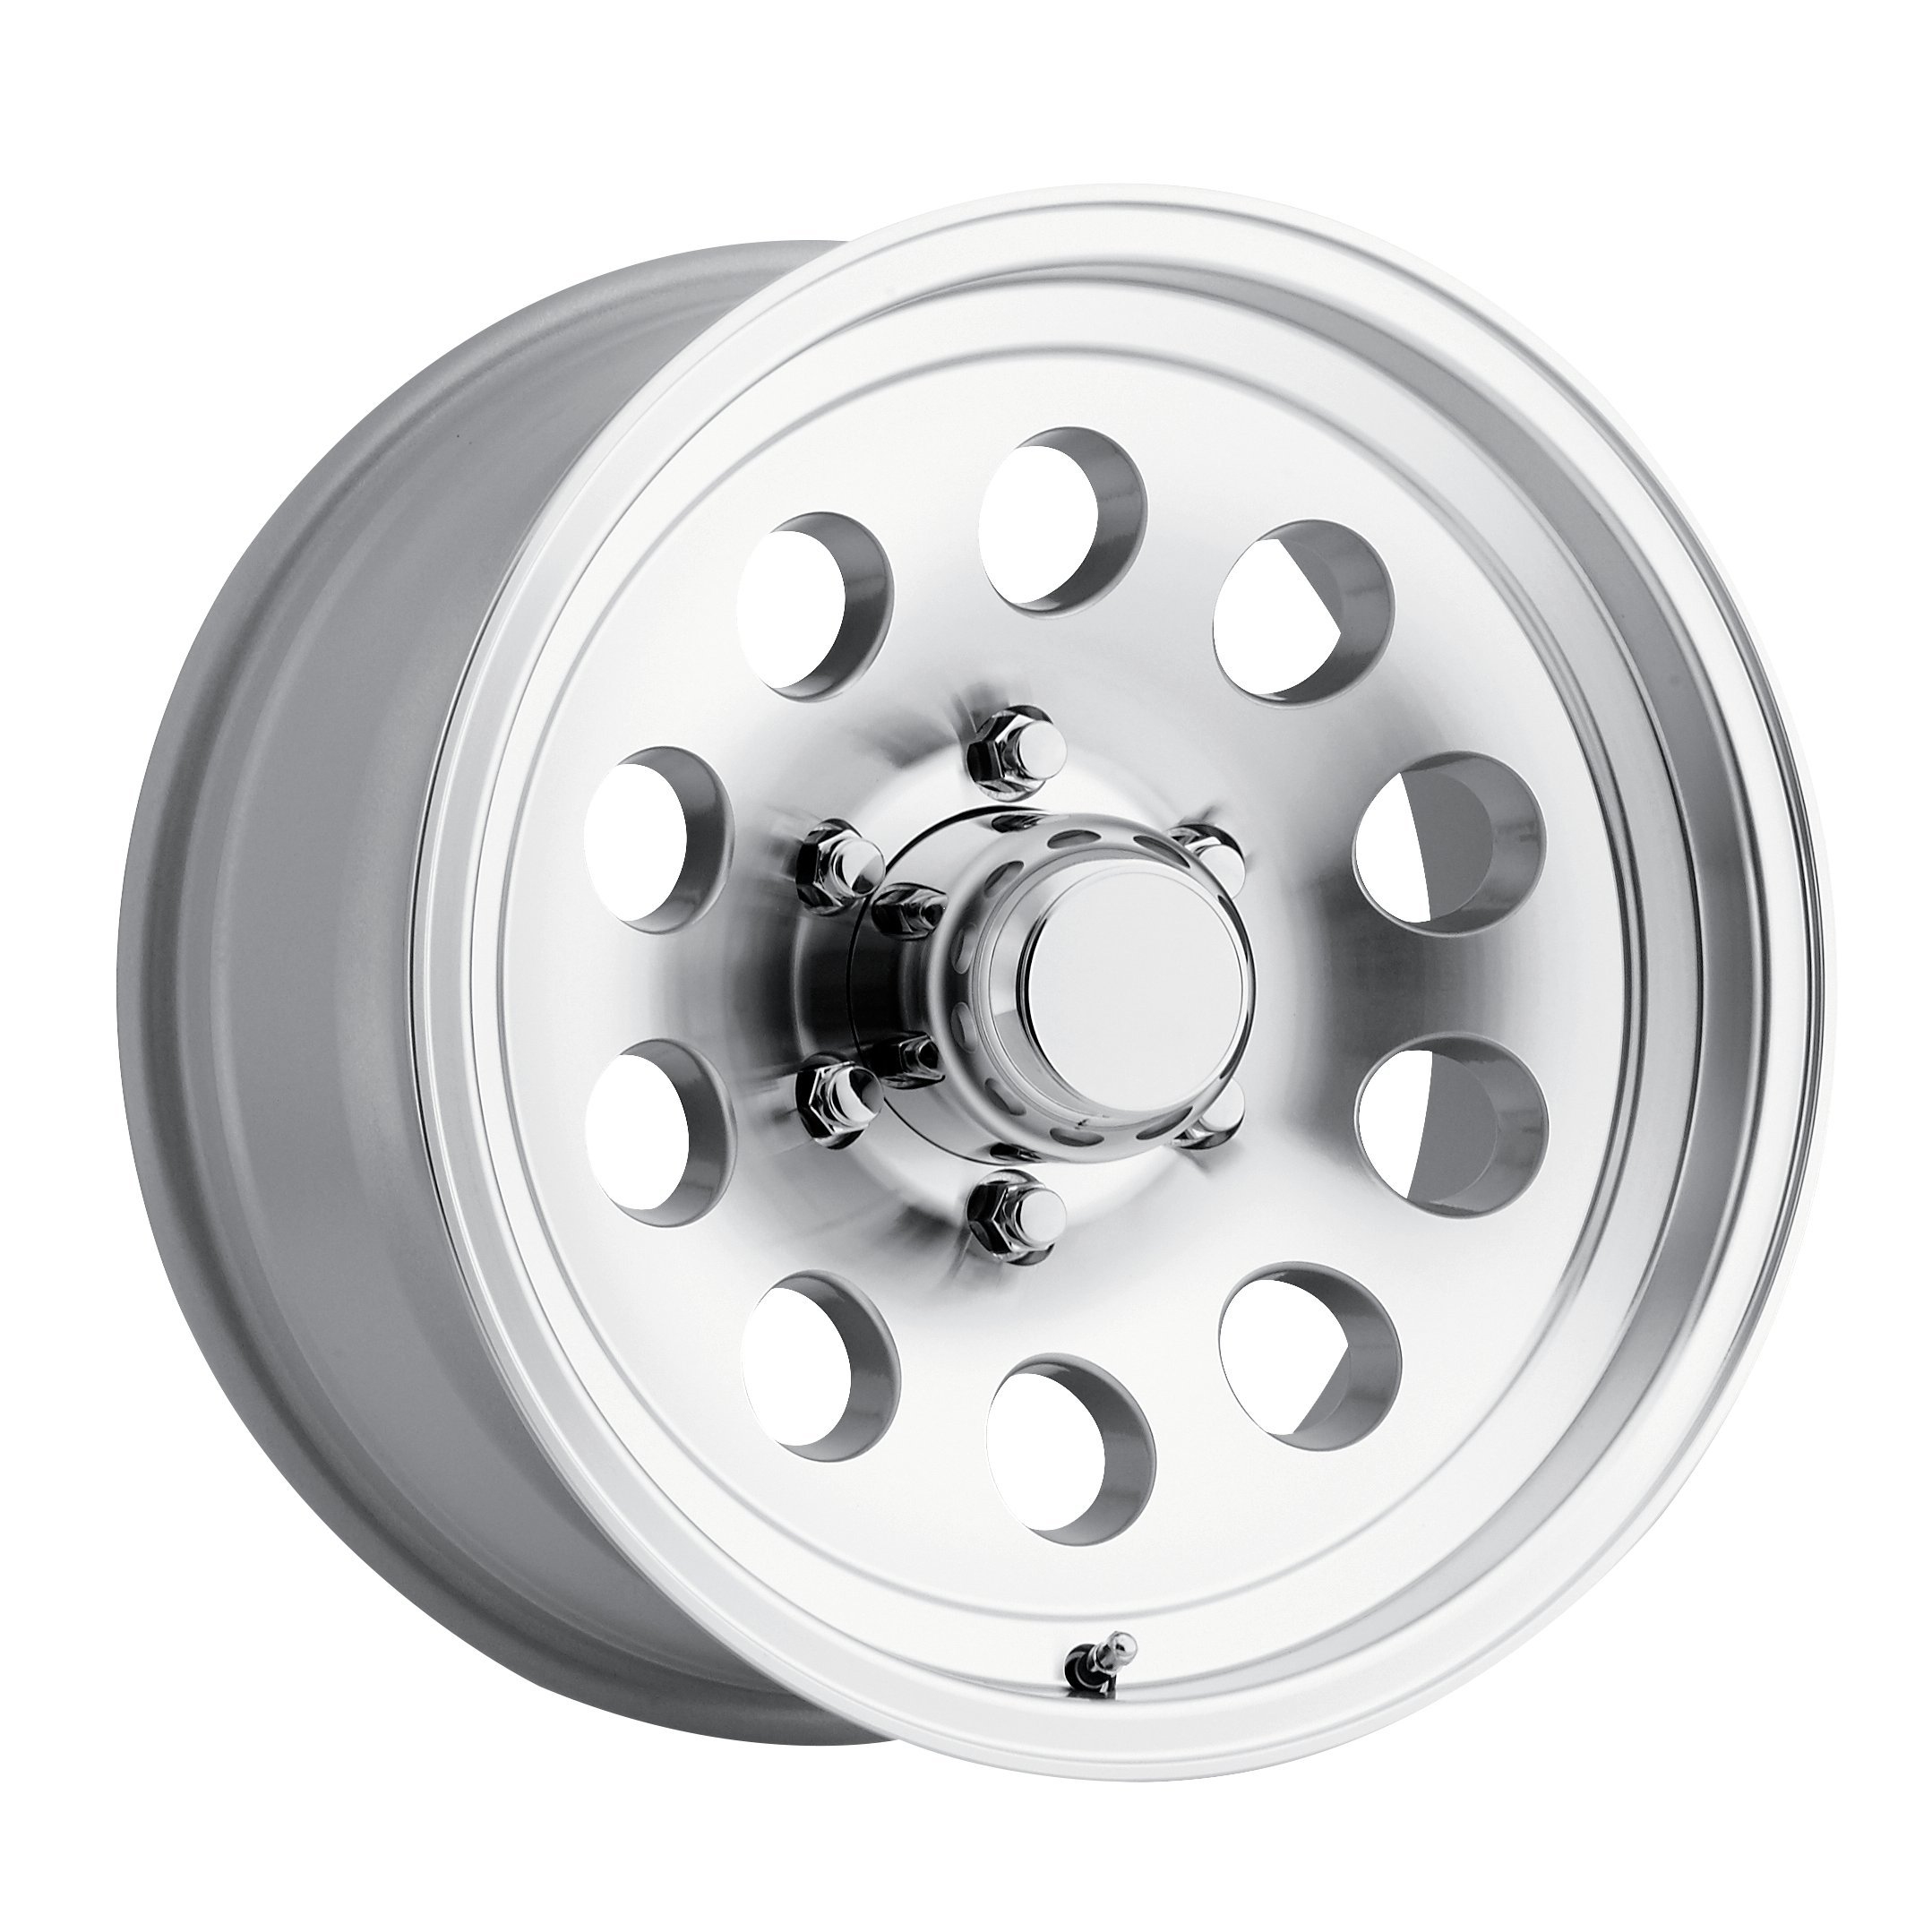 SENDEL S20 ALUMINUM TRAILER WHEEL WITH MACHINED FINISH 16X6 8X6.50(165.1)  +0 4.90